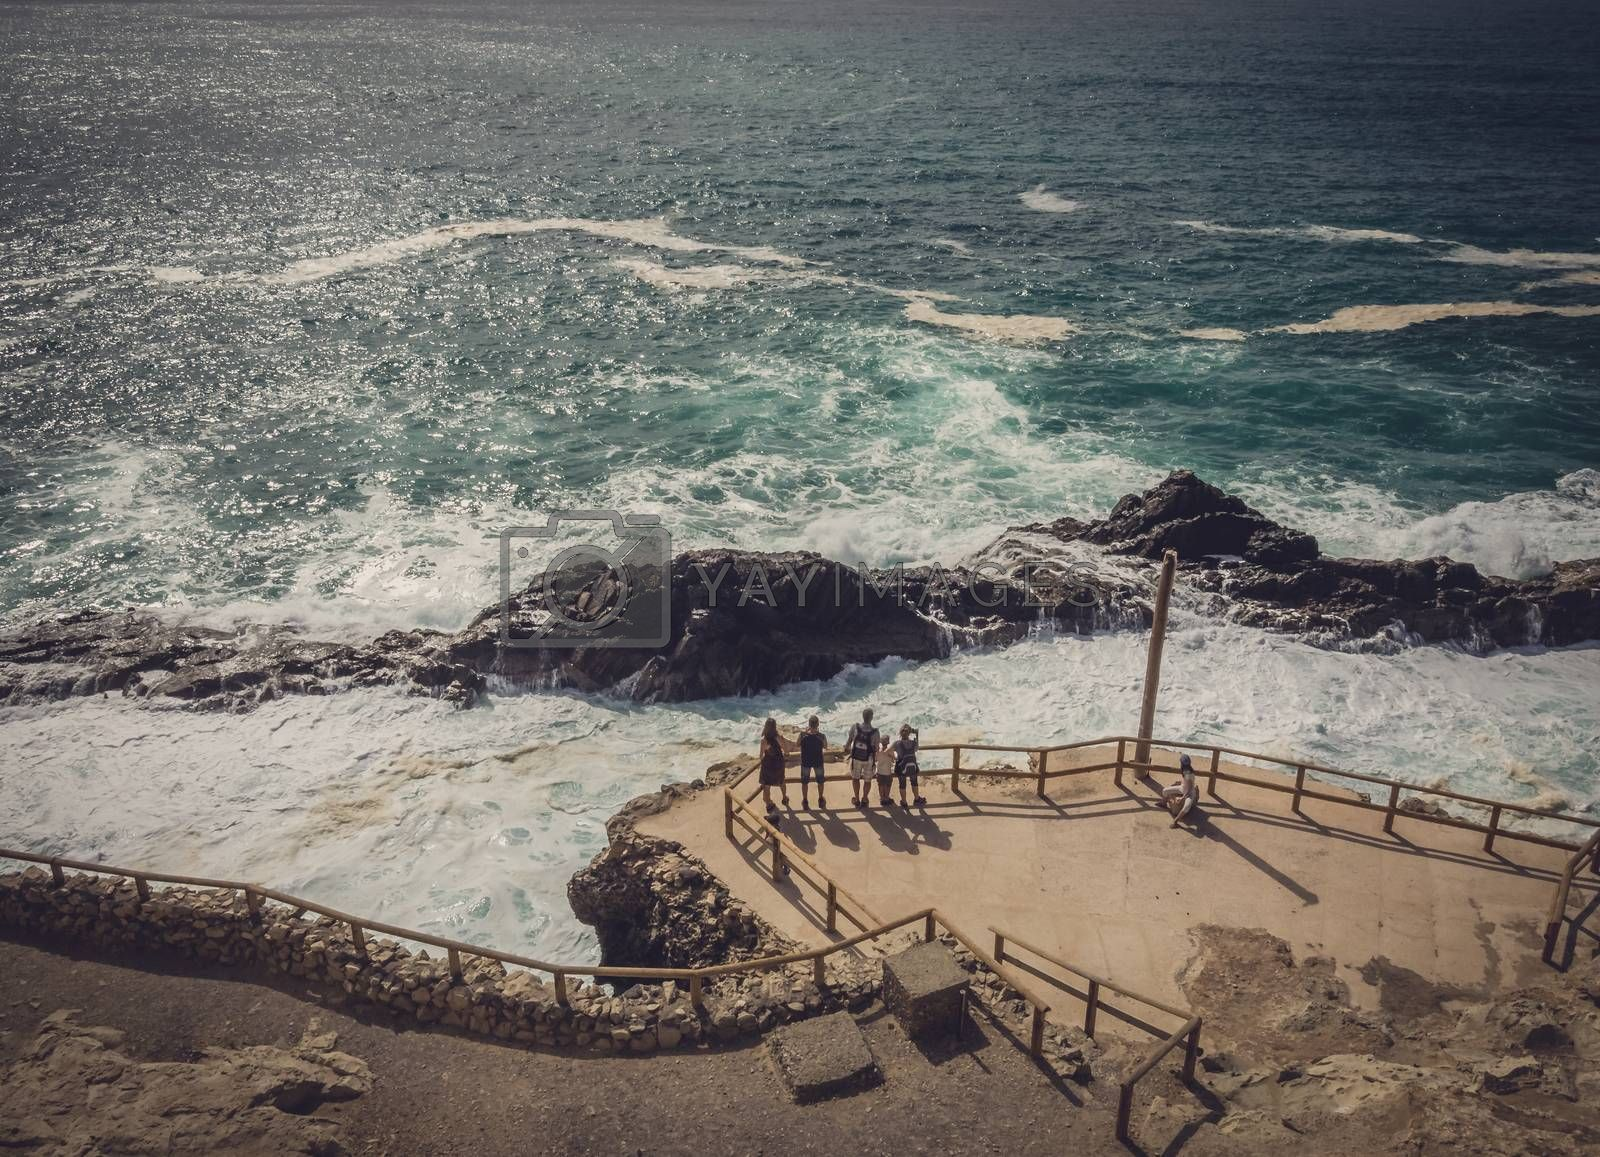 Group of tourists admiring the rocky coast in Ajuy, Parque Rural de Betancuria in Fuerteventura, Canary Island, Spain. Picture taken 13 April 2016